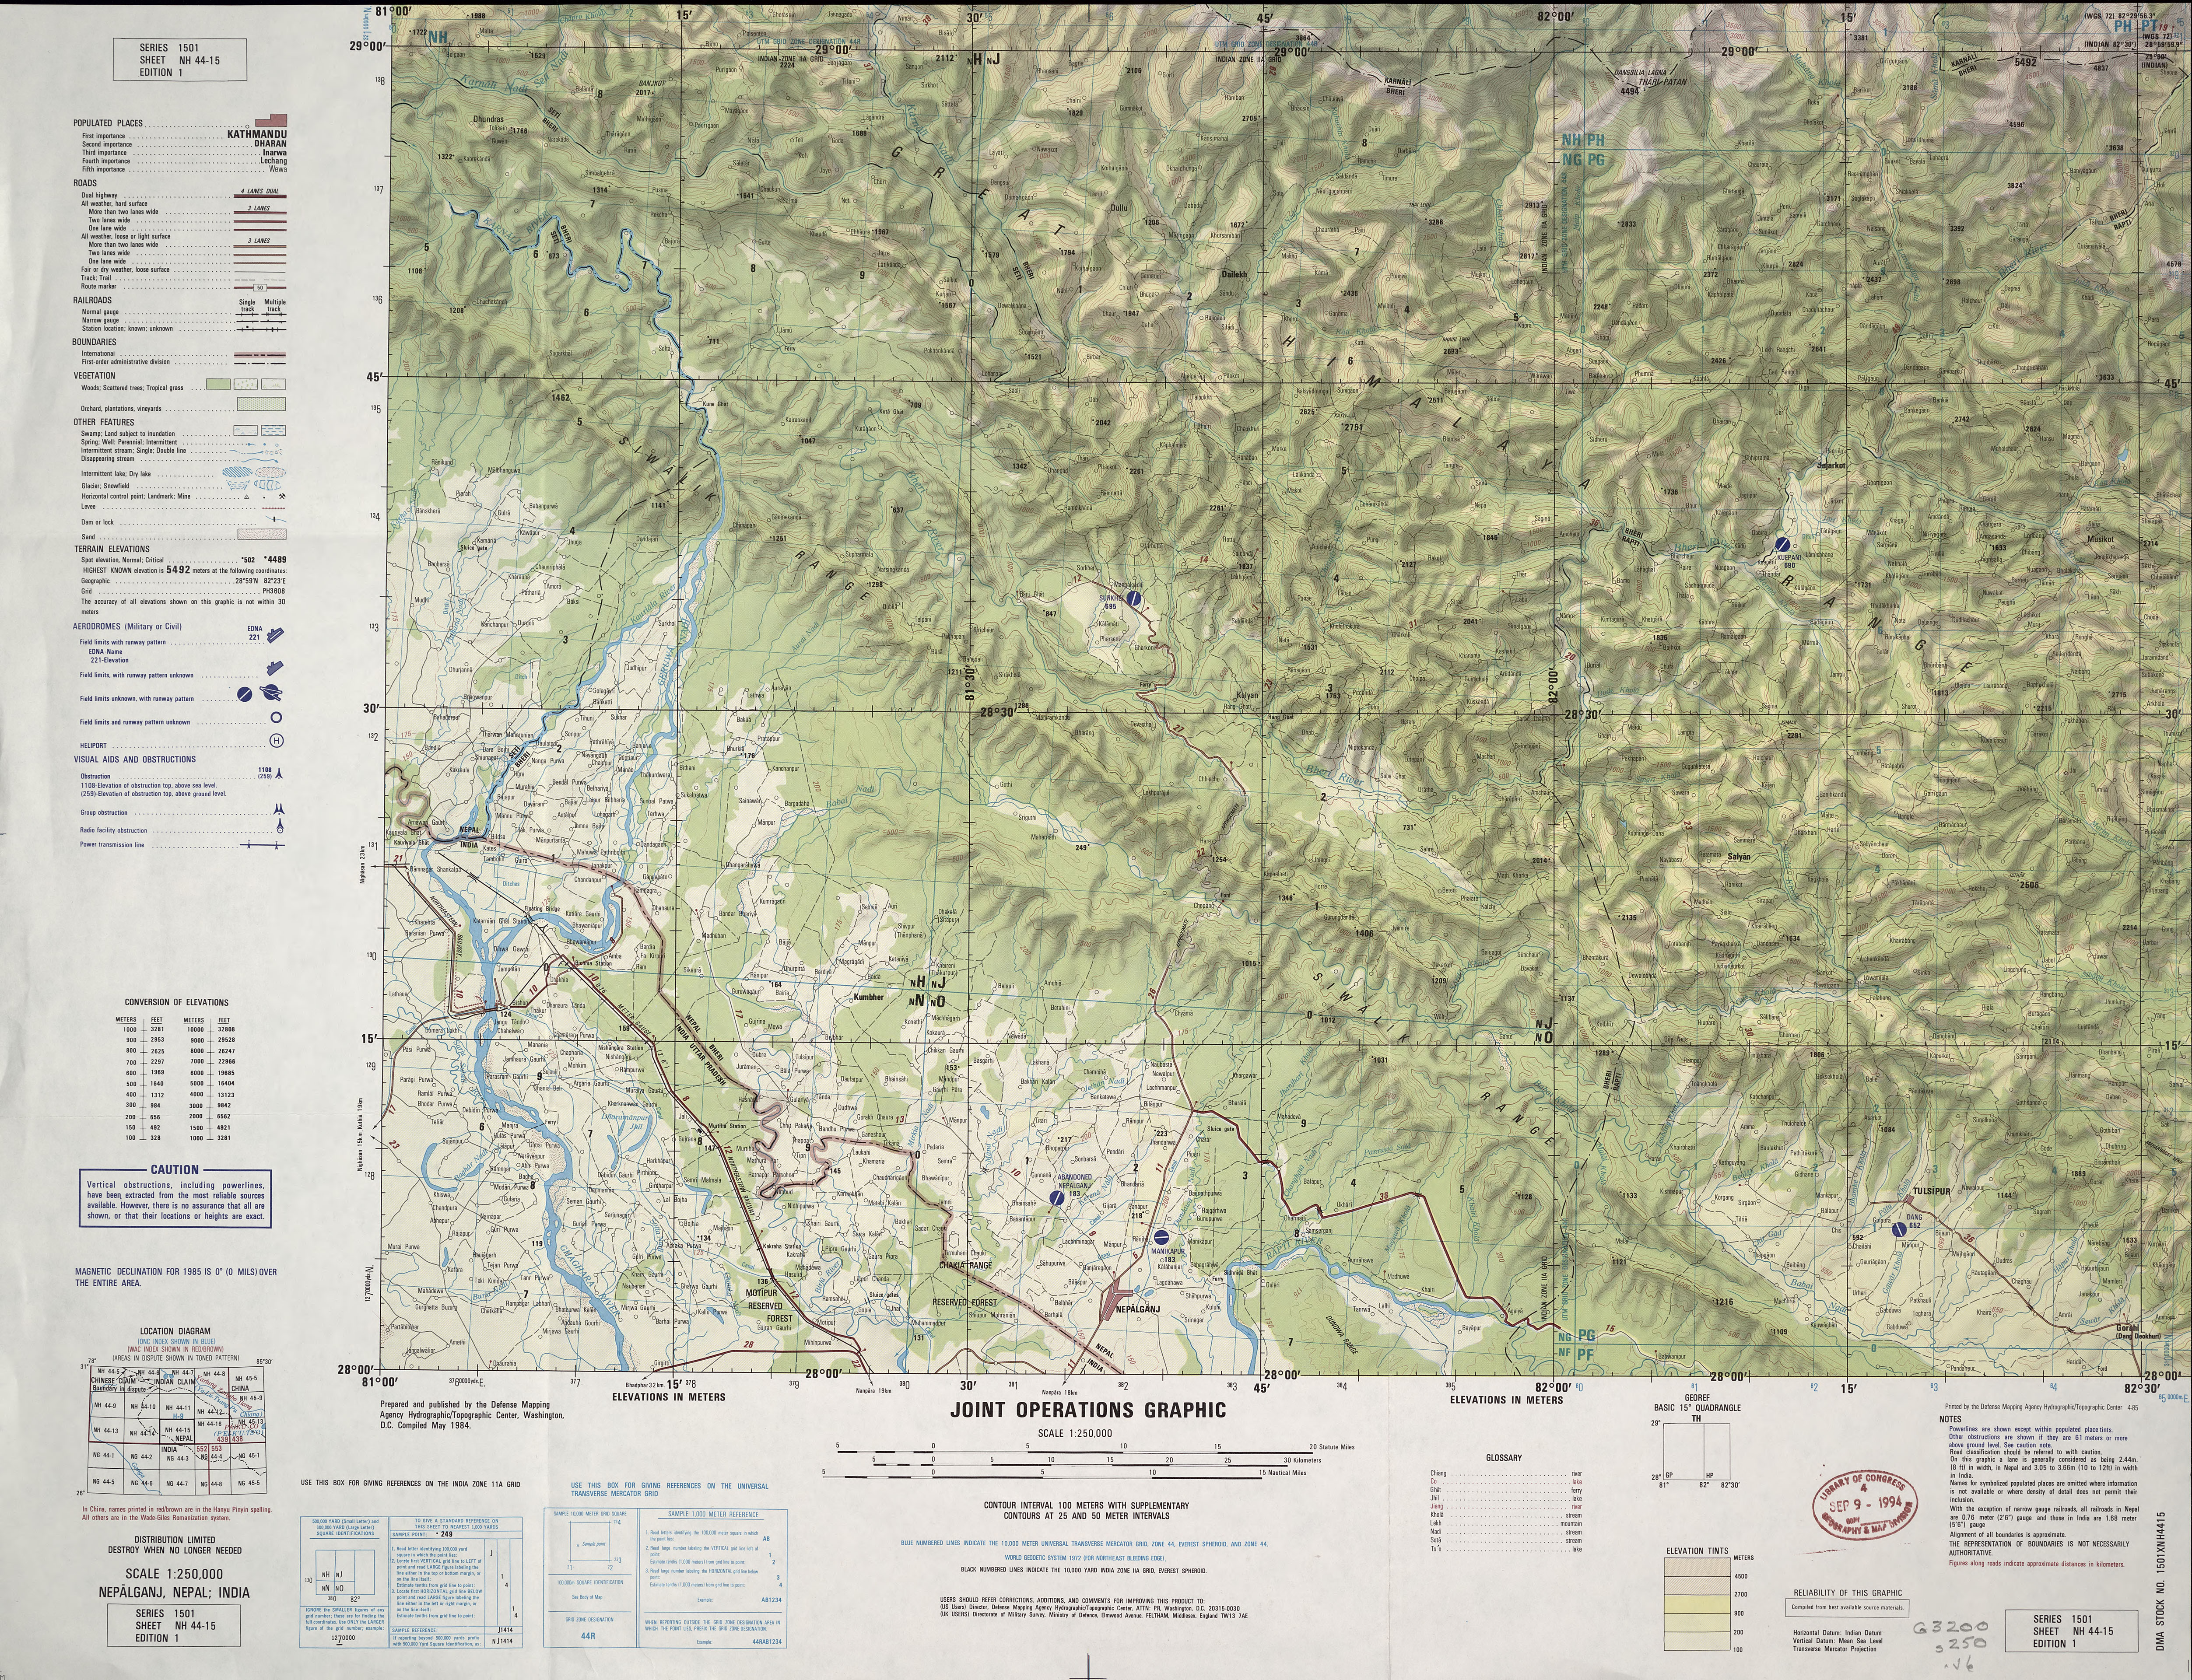 India Joint Operations Graphic Perry Casta±eda Map Collection UT